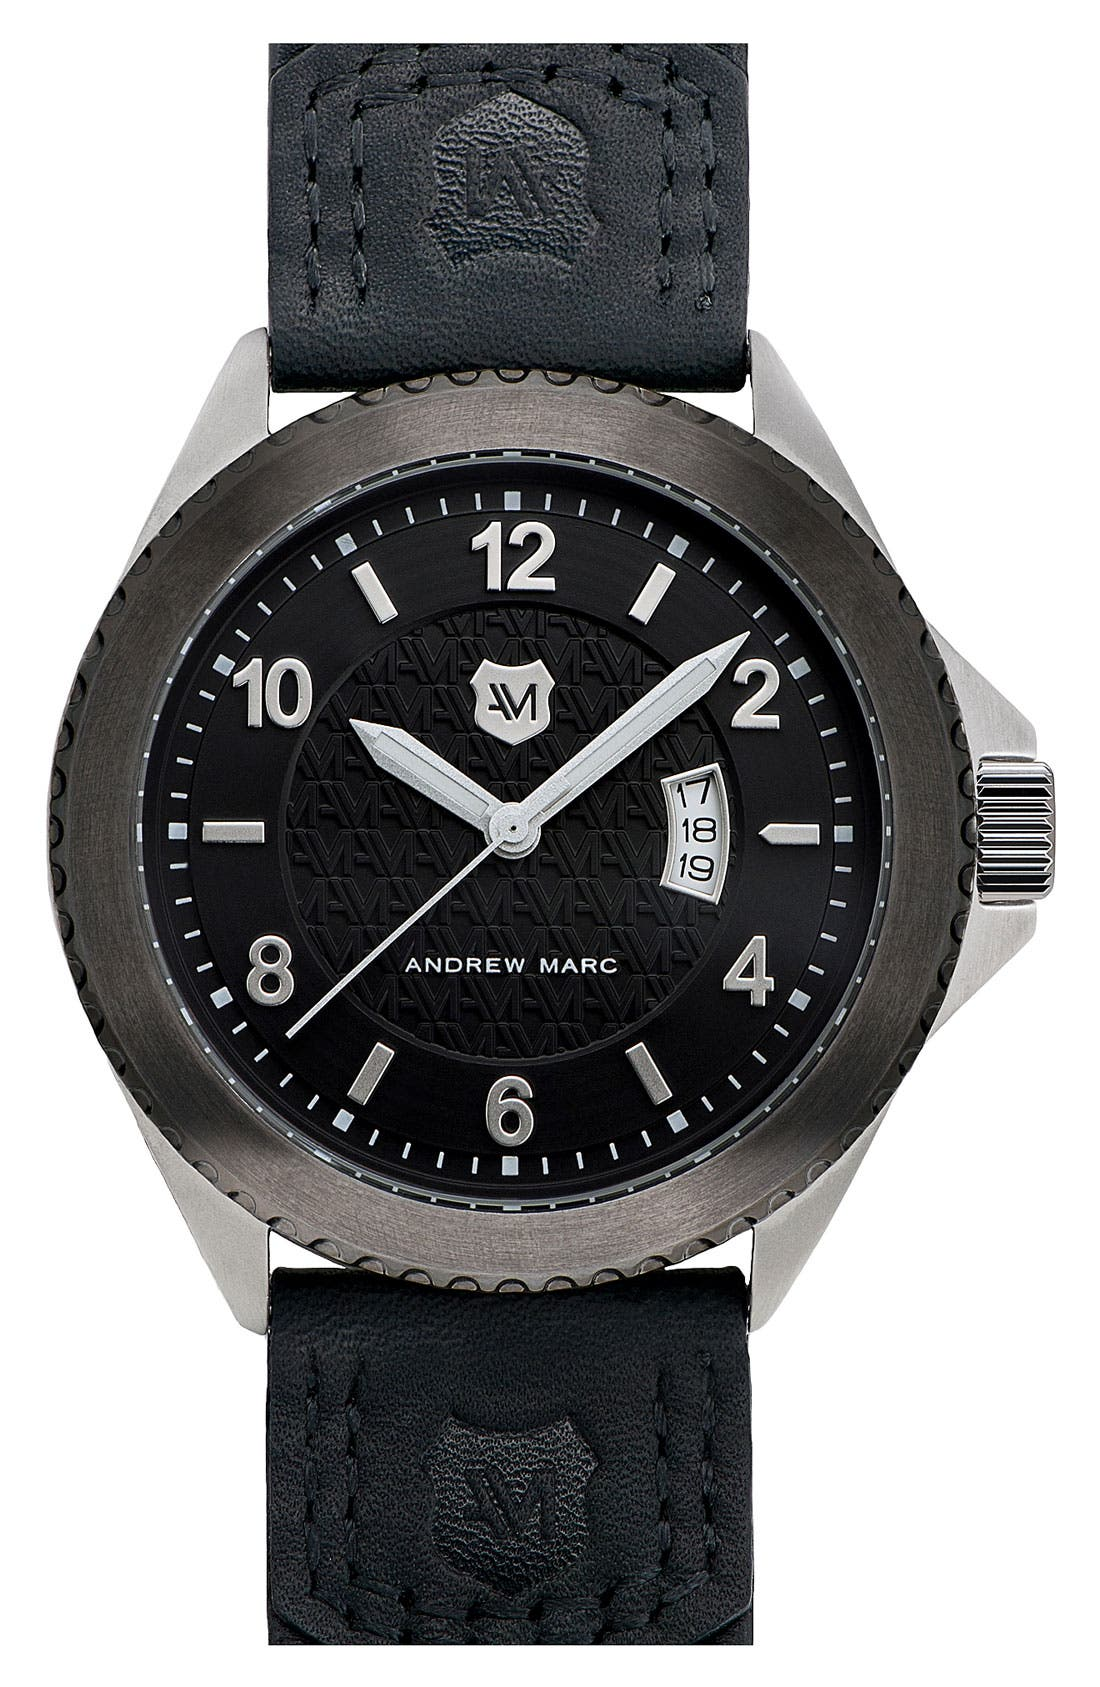 Main Image - Andrew Marc Watches 'Heritage Roadside' Round Leather Strap Watch